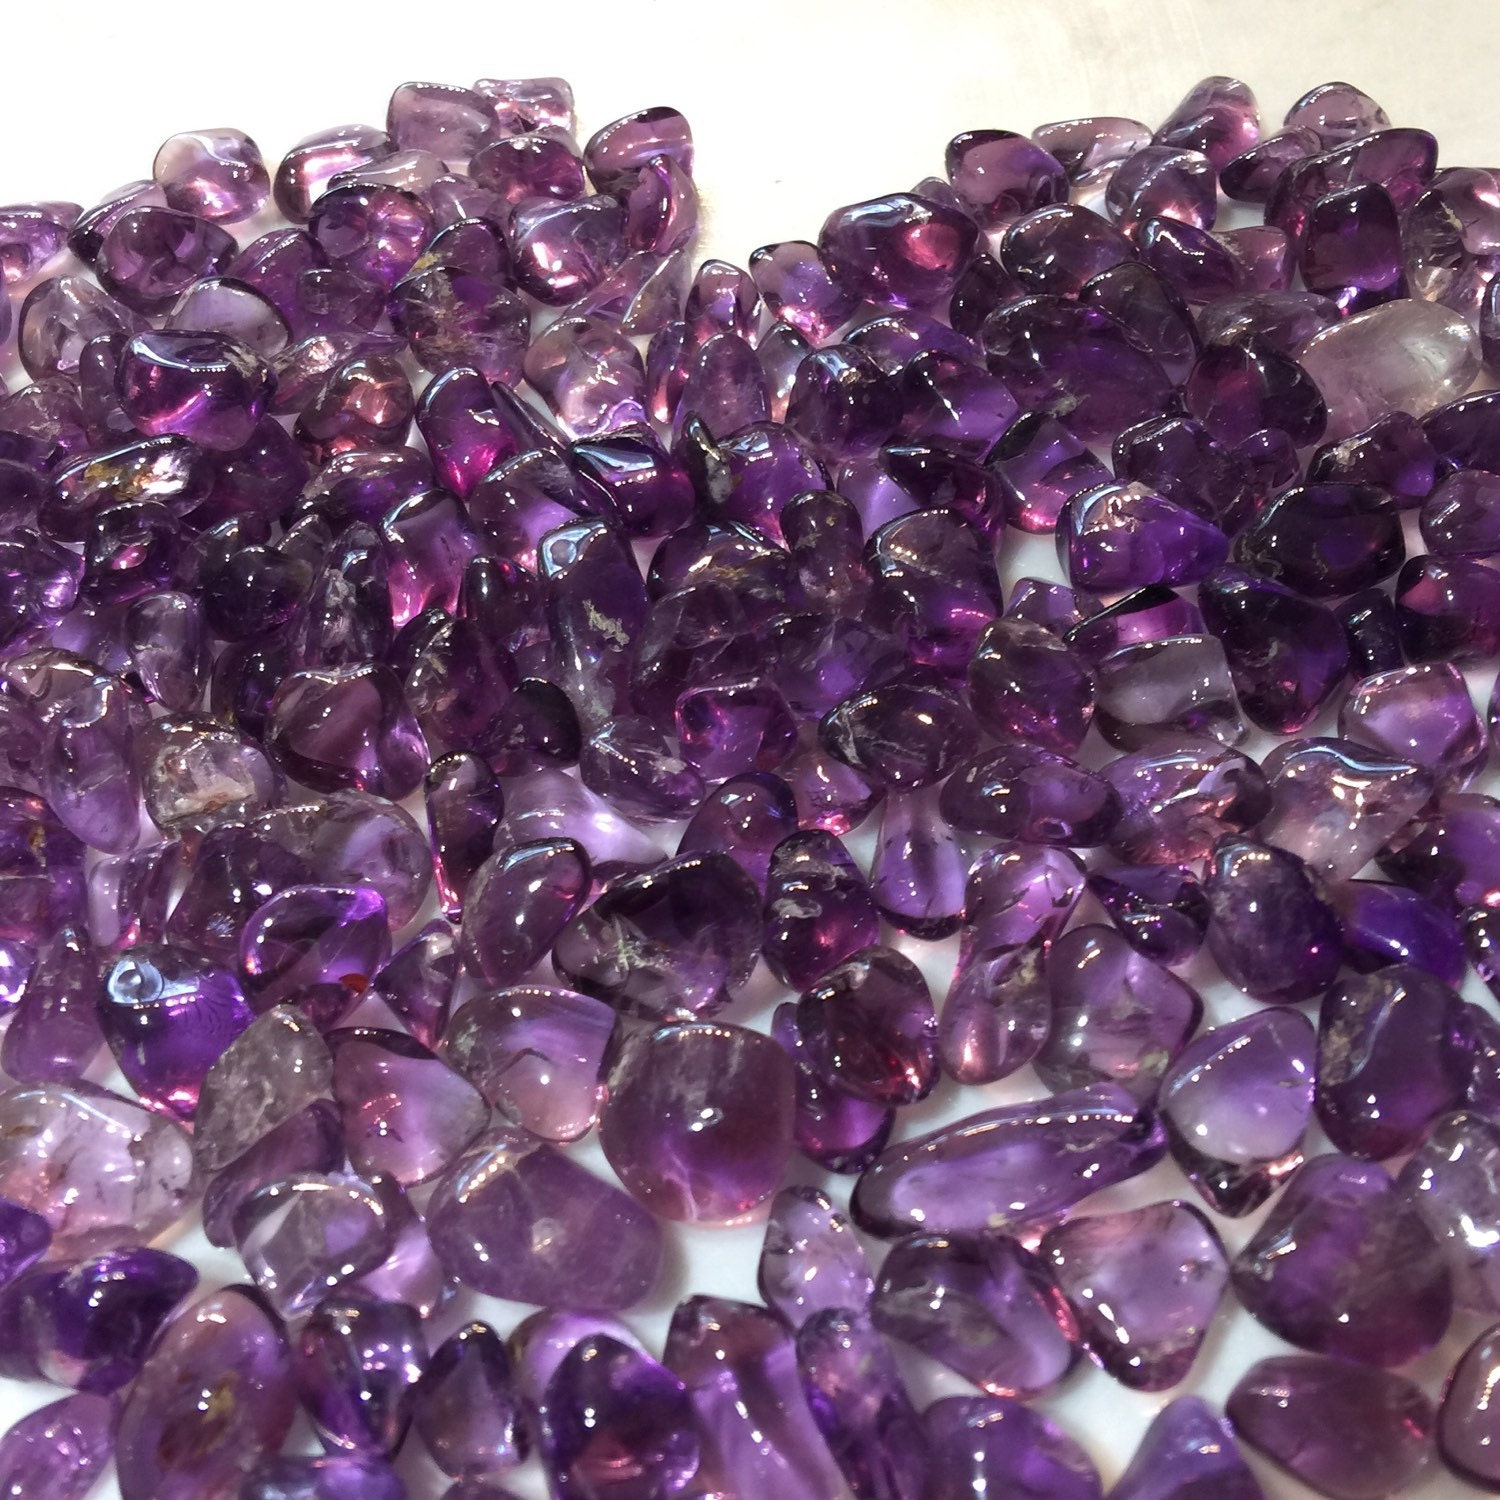 siberian amethyst tumbled gemstones usa mine four peaks